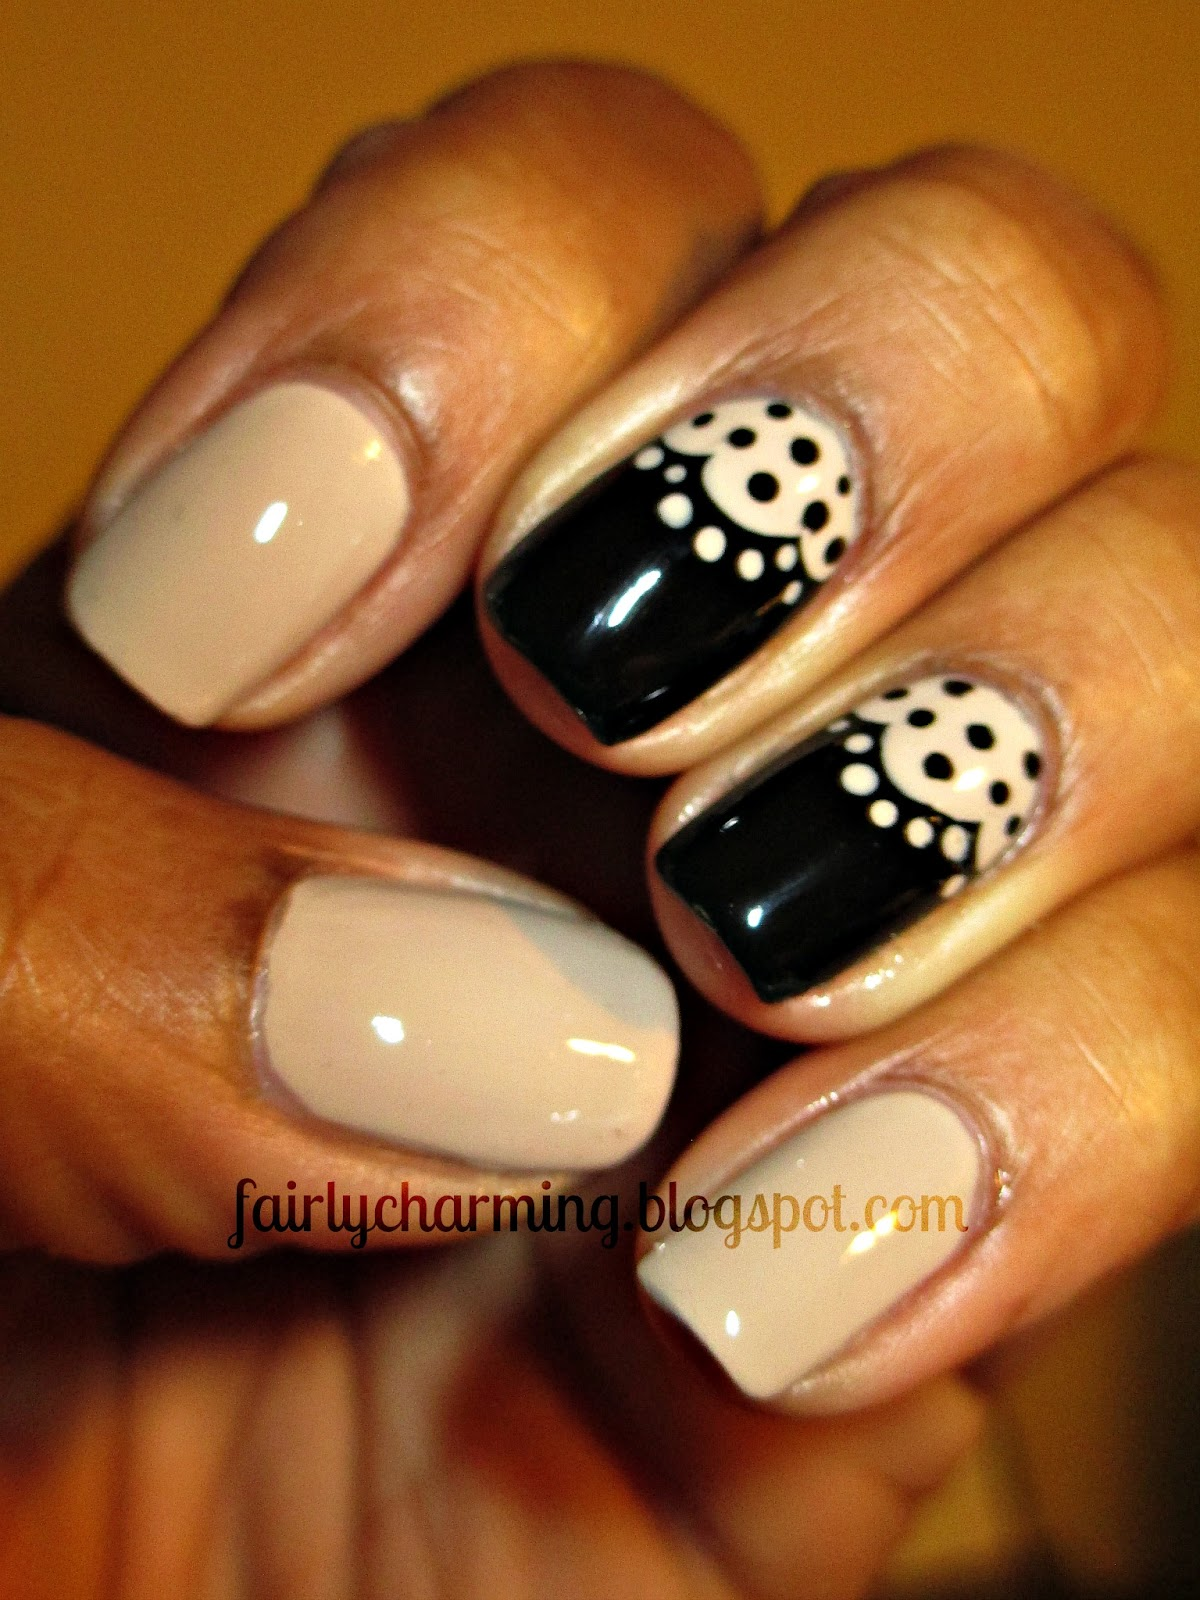 Fairly Charming: Church Mani: Concertized Lace